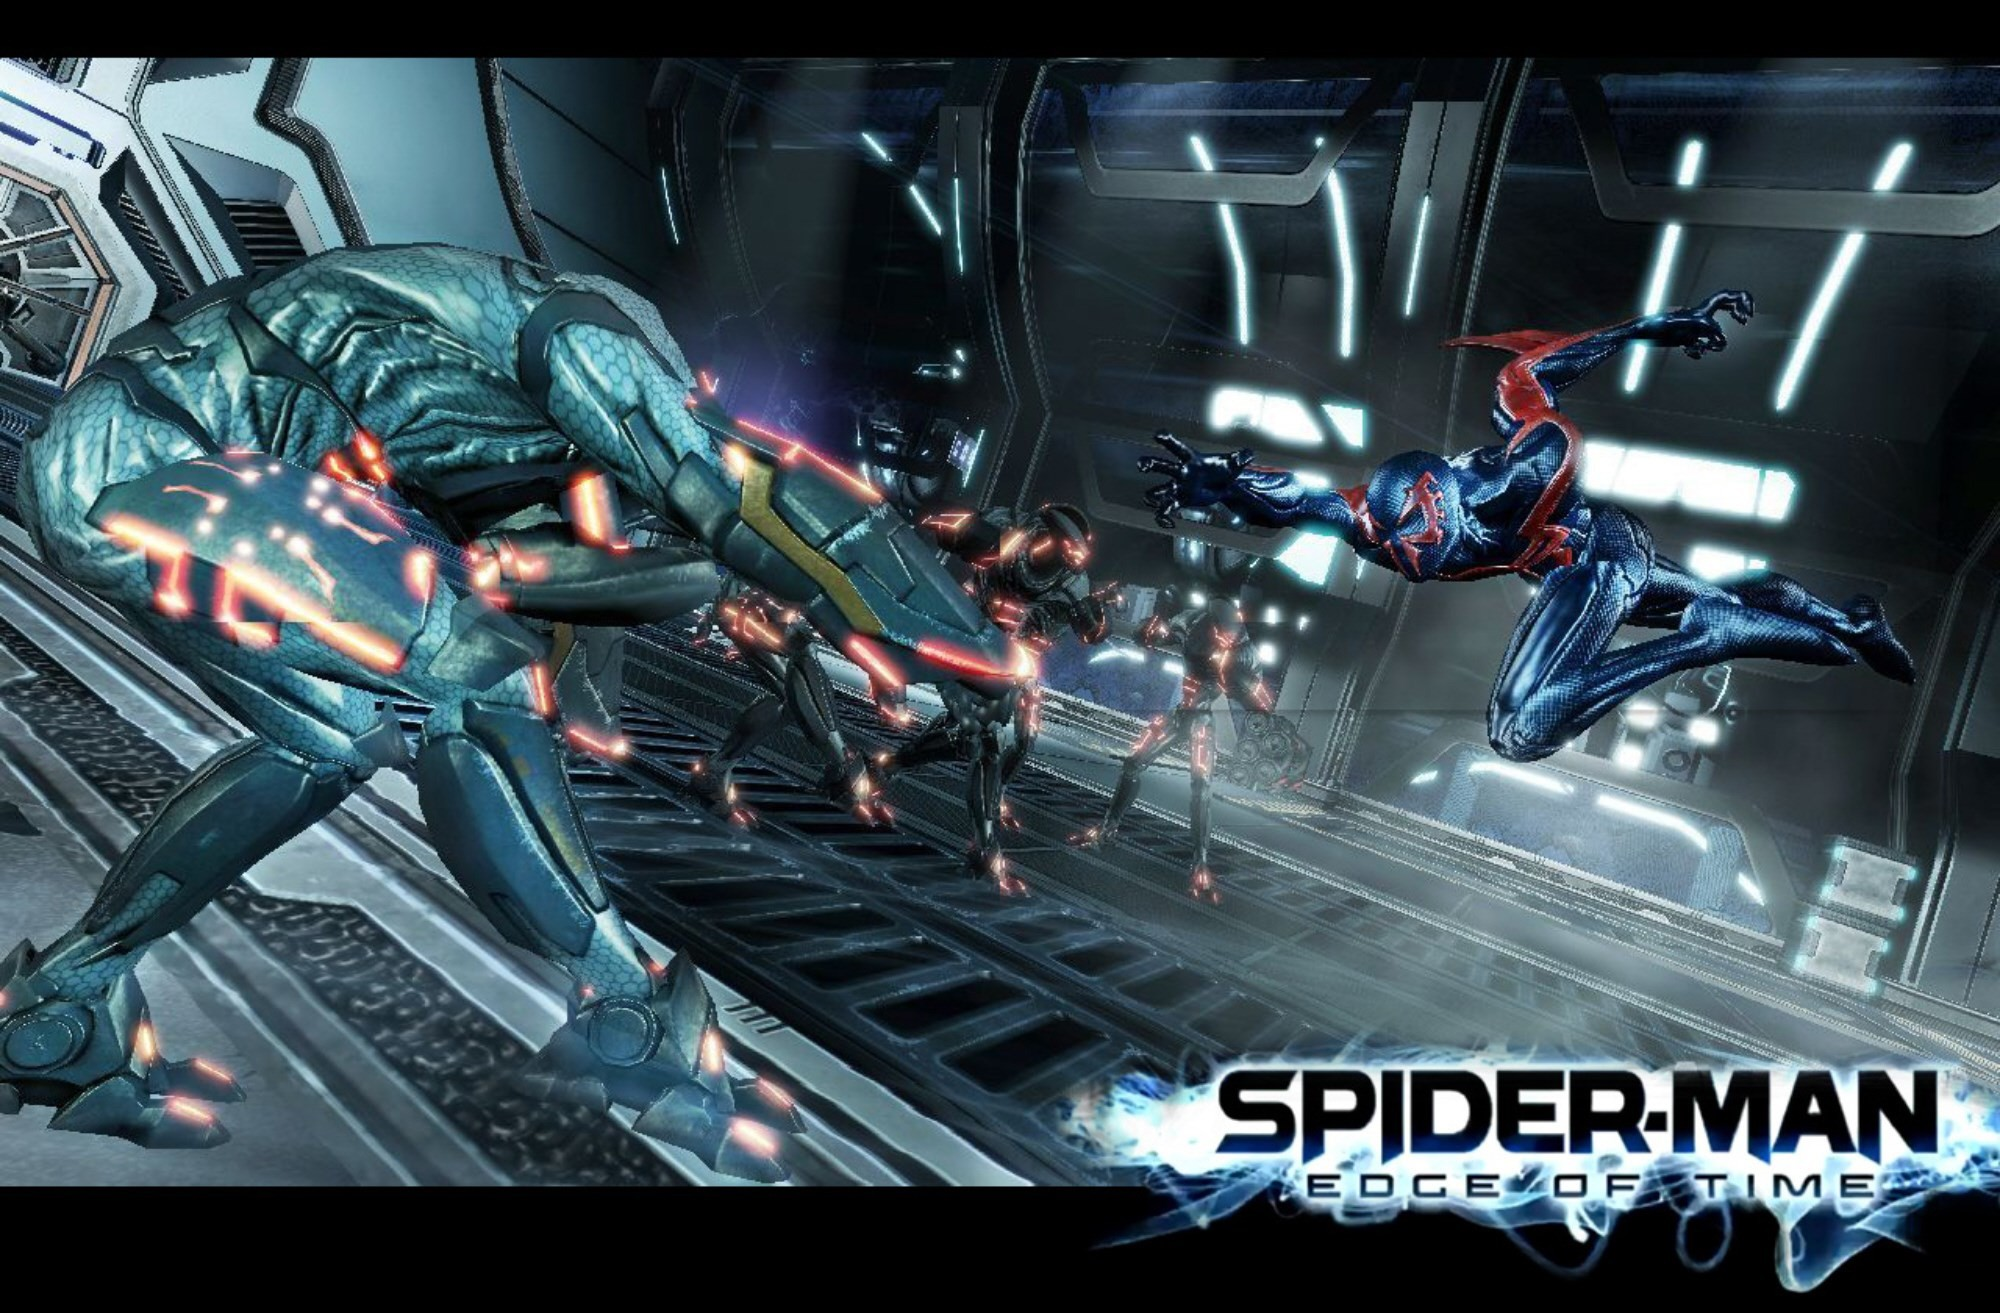 spider man 2099 edge of time wallpaper …